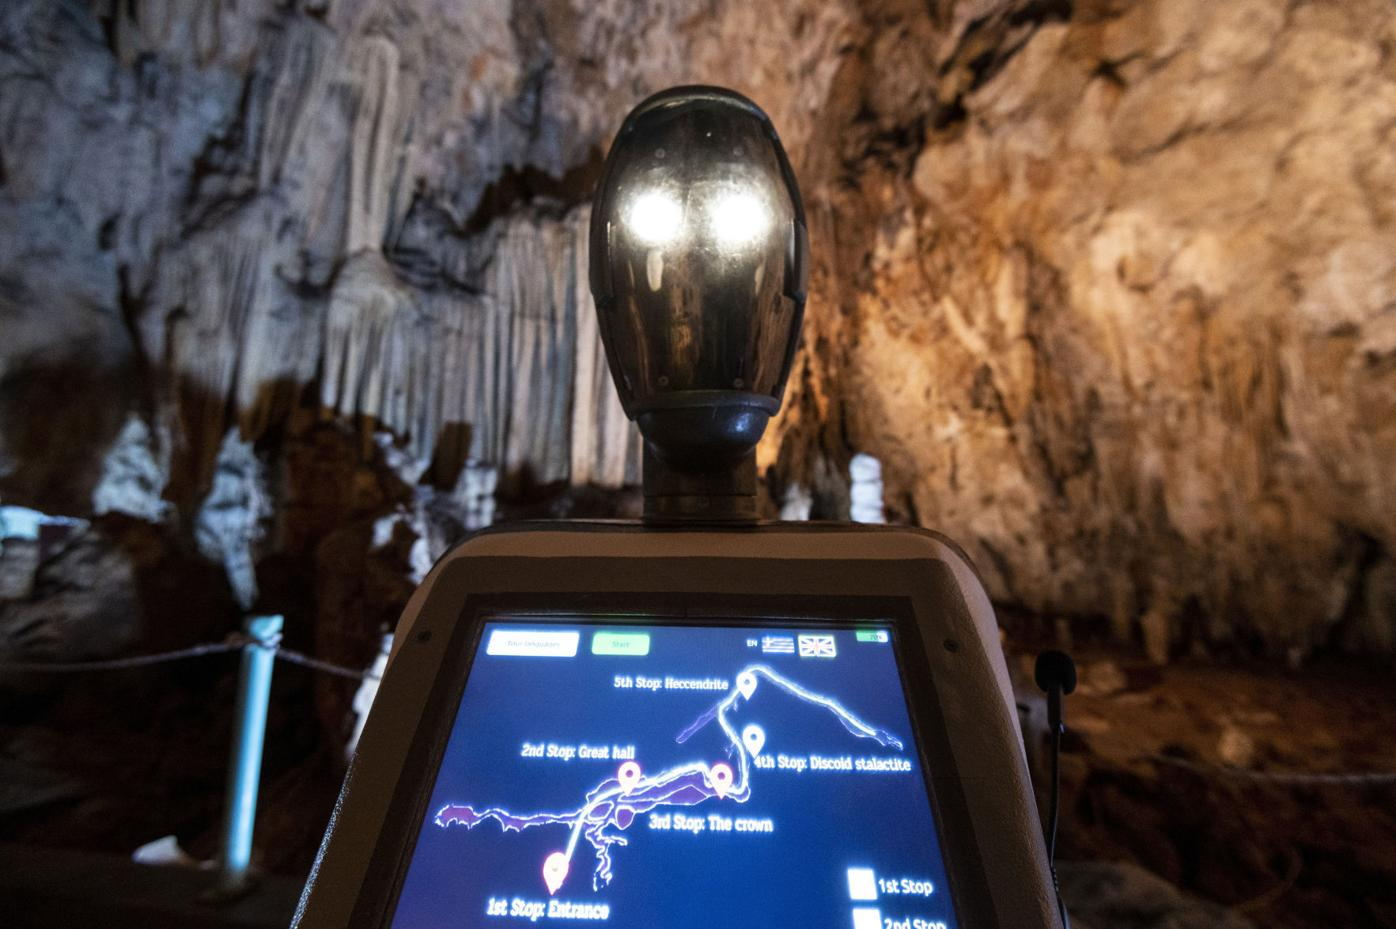 Greece Cave Robot In your face screen